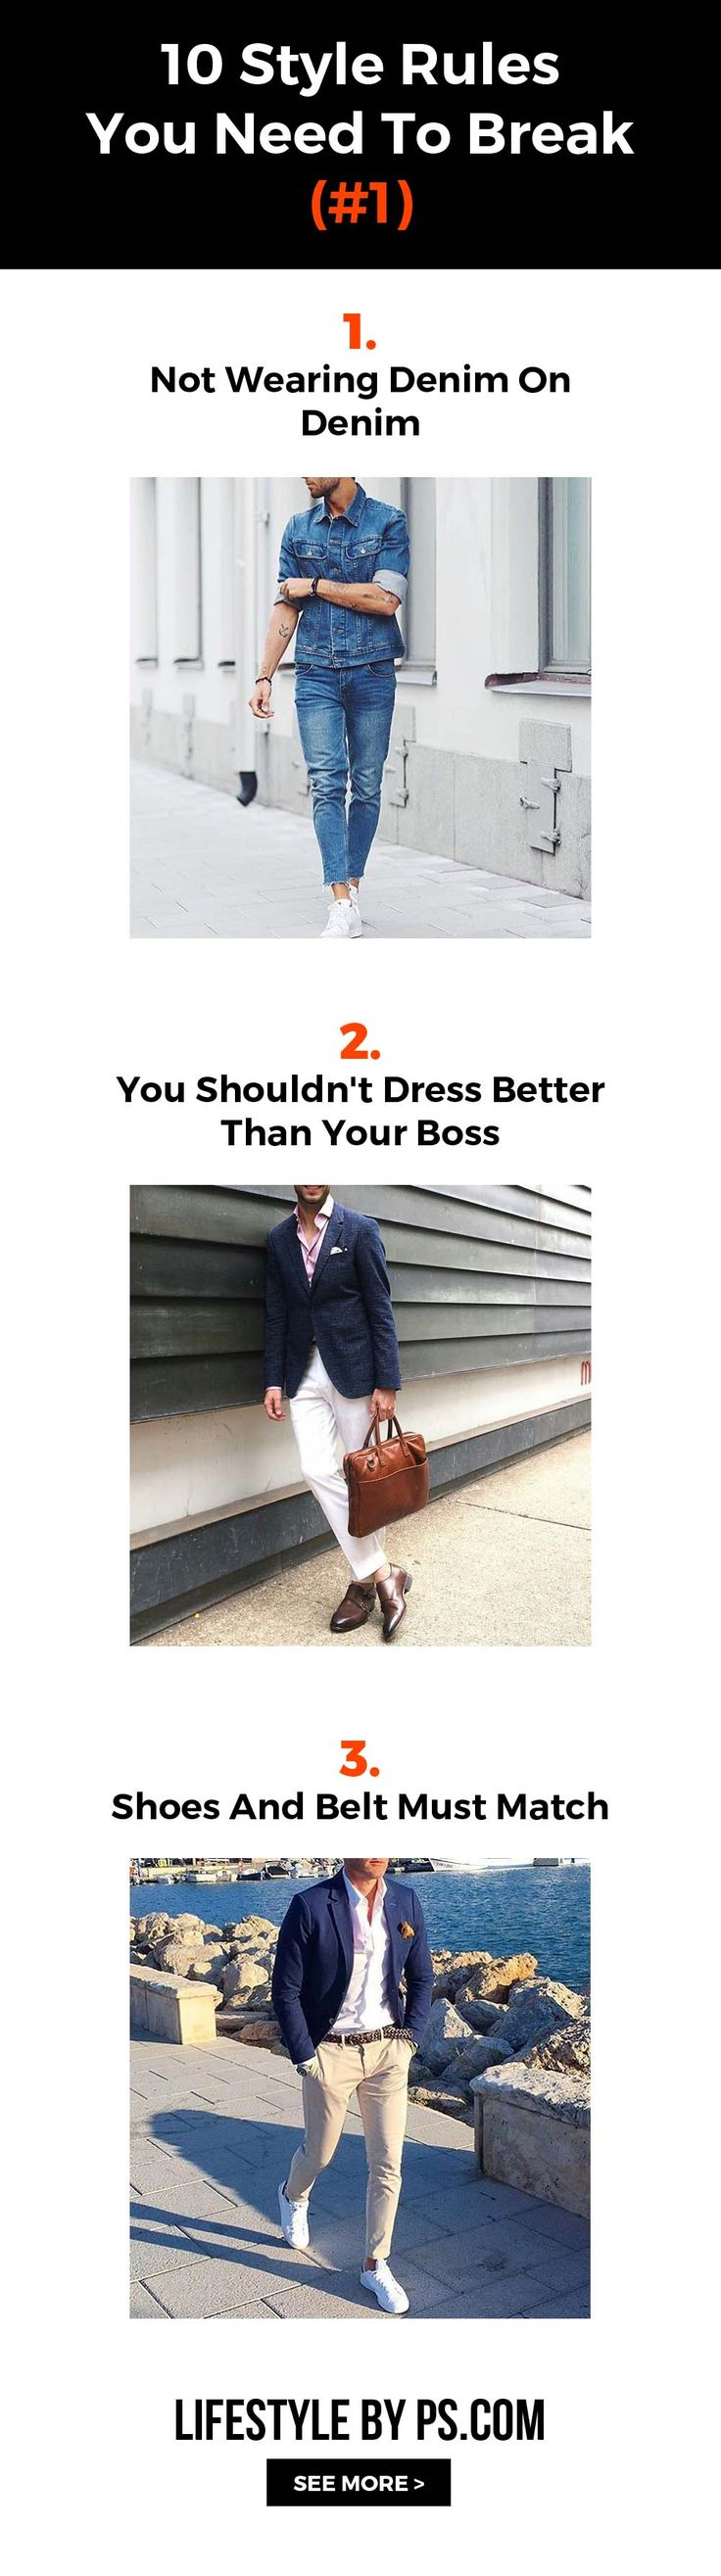 10 Style Rules You Need To Break - Click Image To See More - #mens #fashion #style #fashionmistake